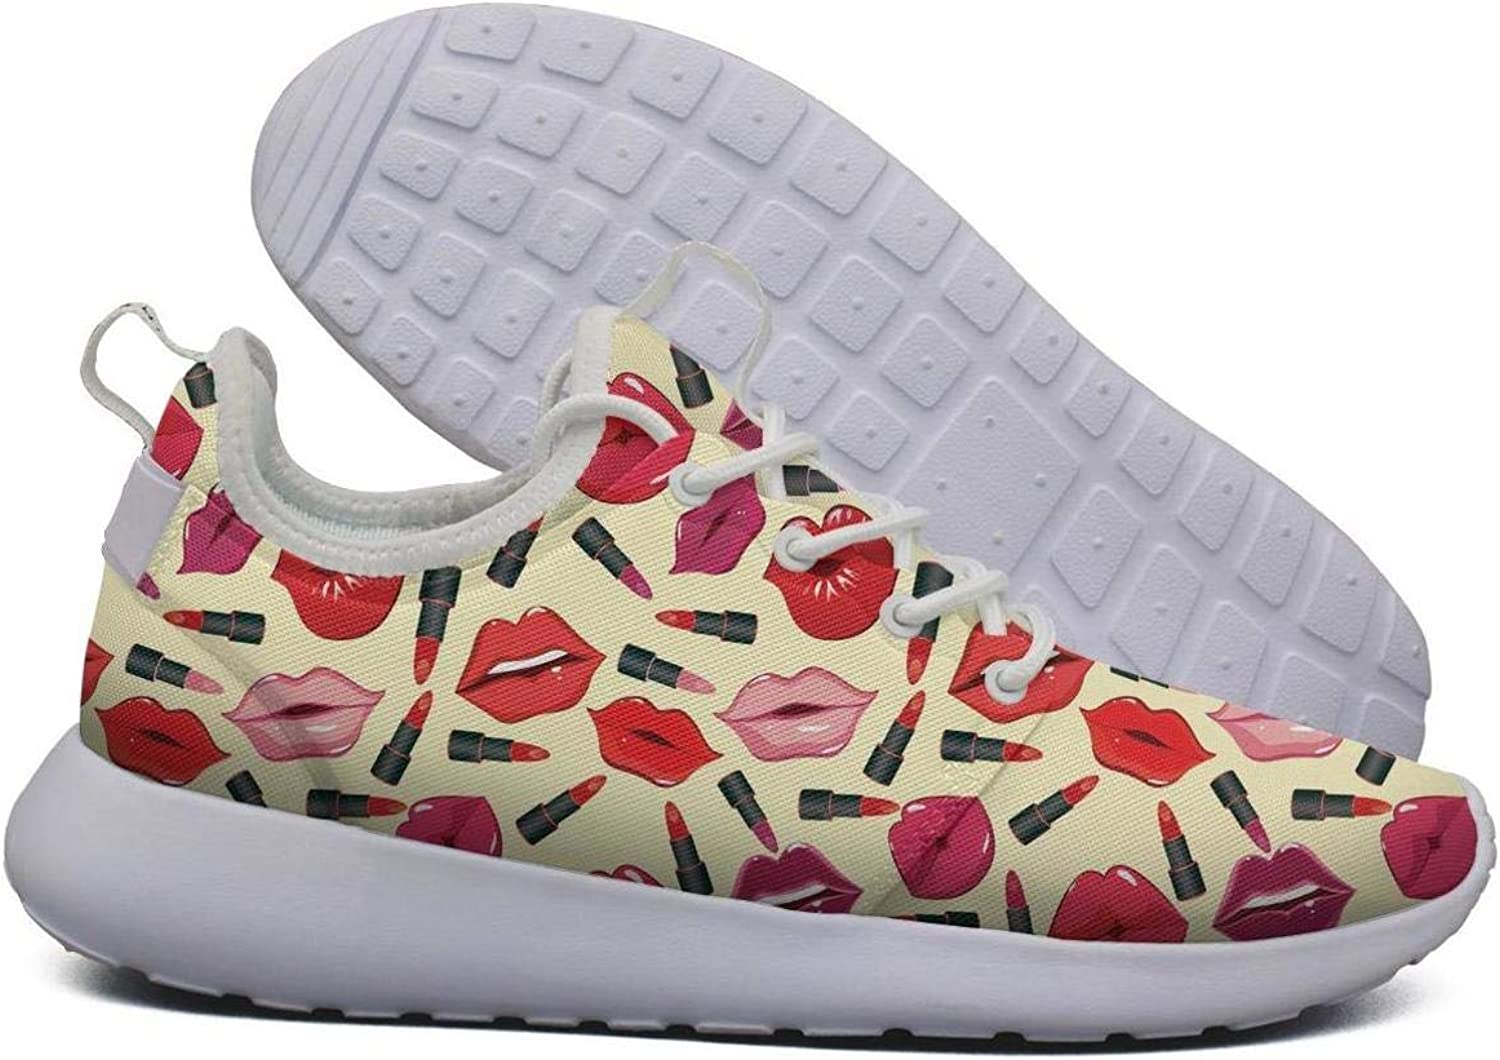 Hoohle Sports Womens red Lips Print Flex Mesh Roshe 2 Lightweight Soft Cross-Country Running shoes